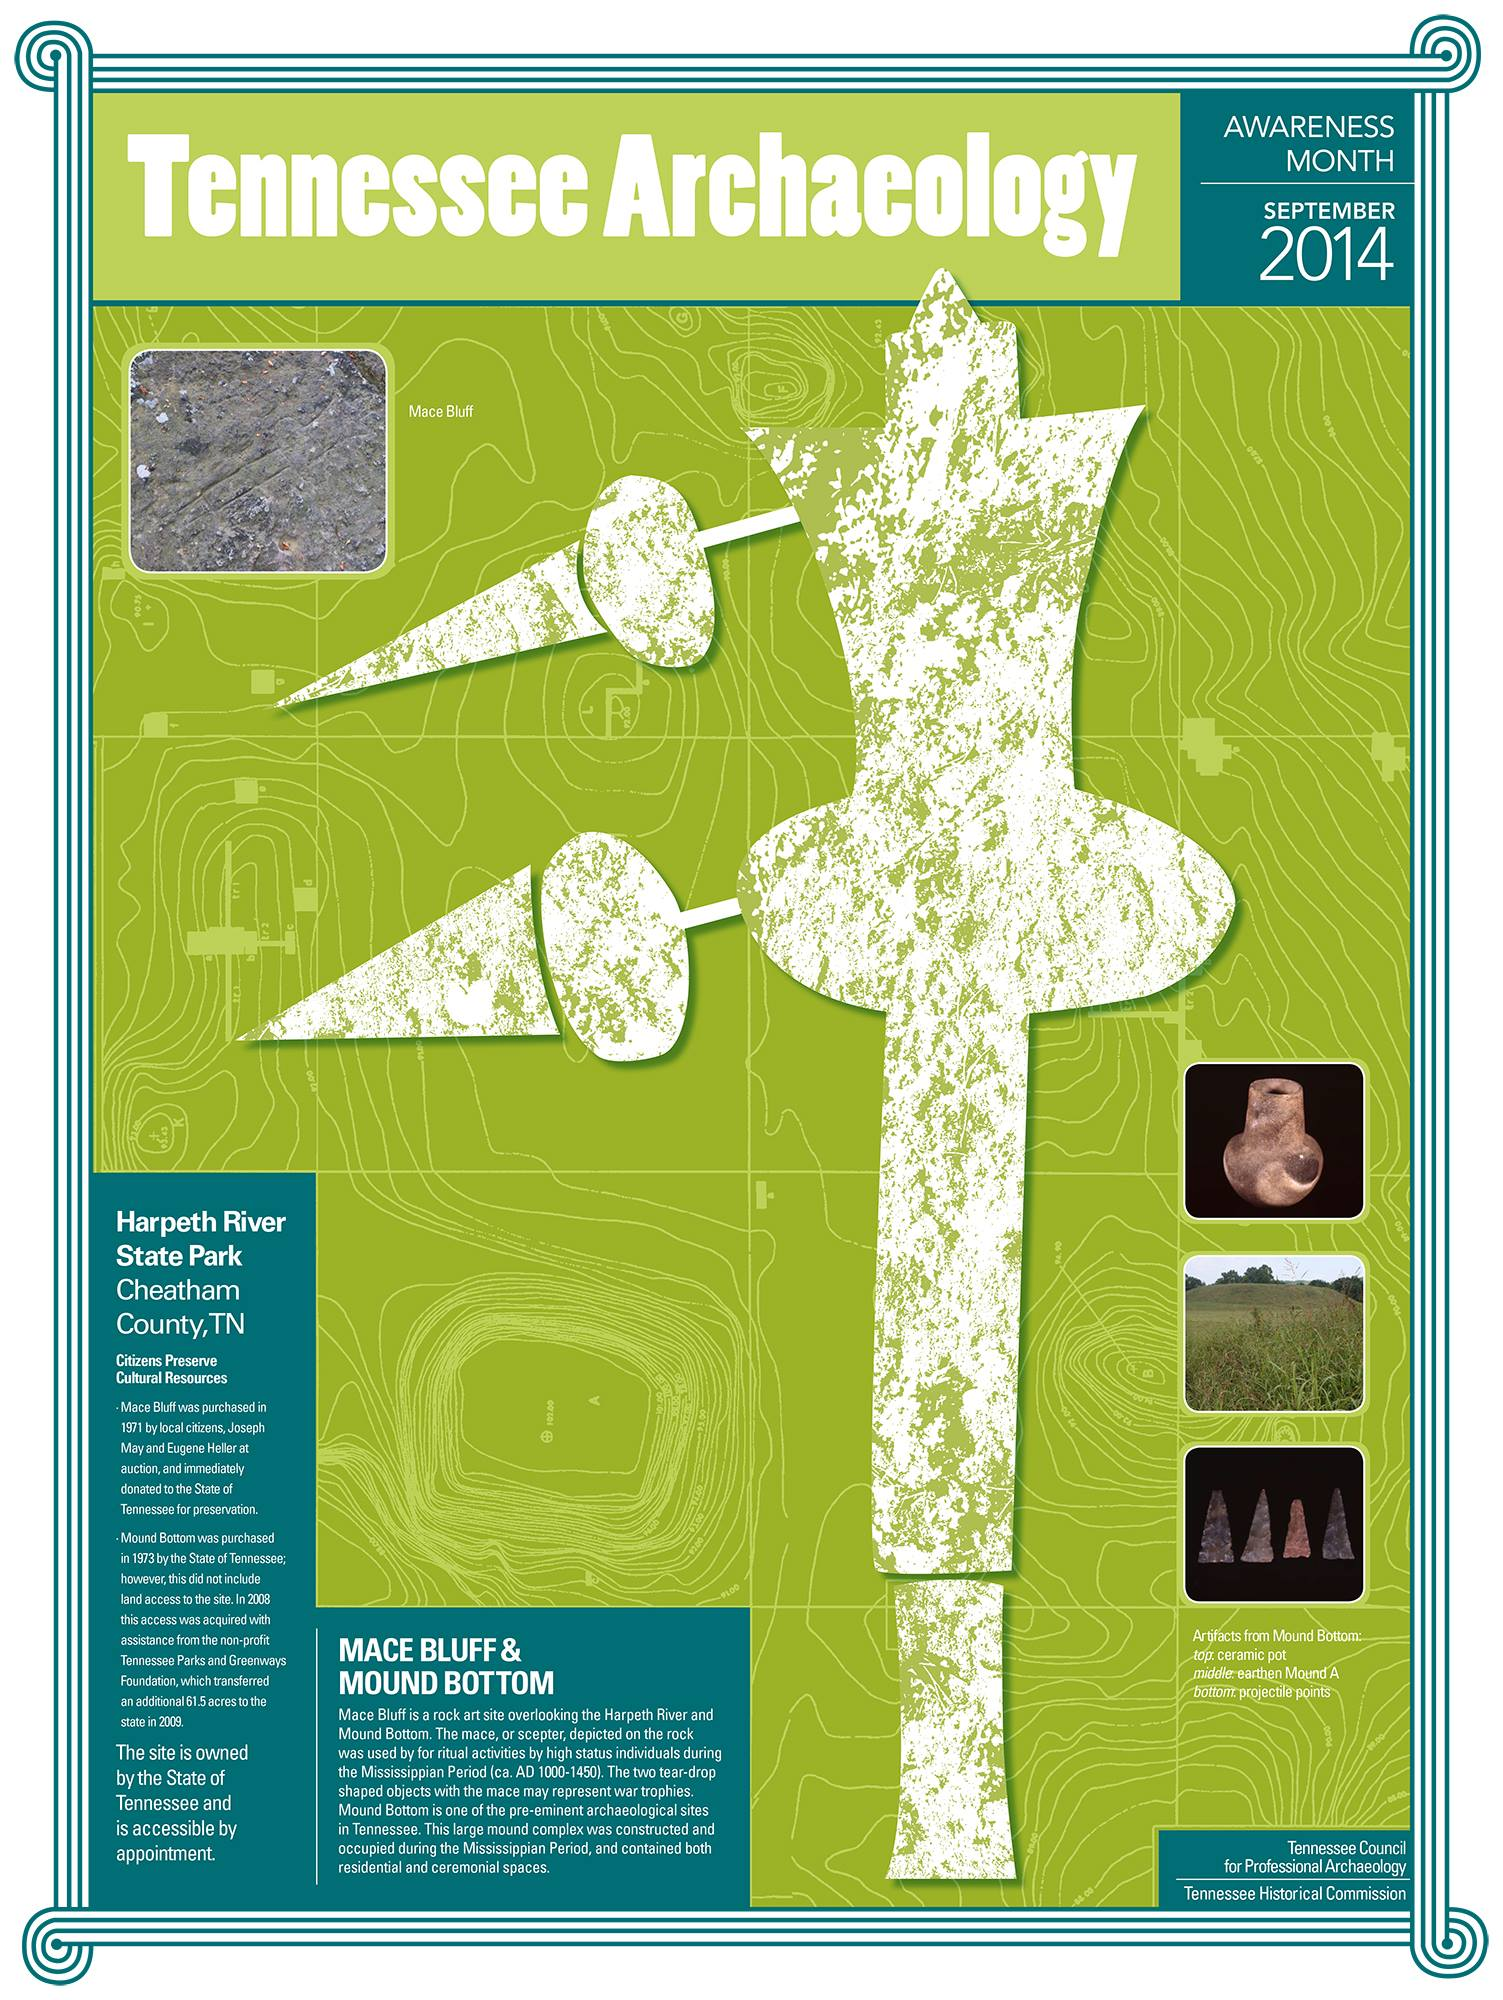 Mound Bottom was the inspiration for the Tennessee Archaeology Awareness Month 2014 poster.